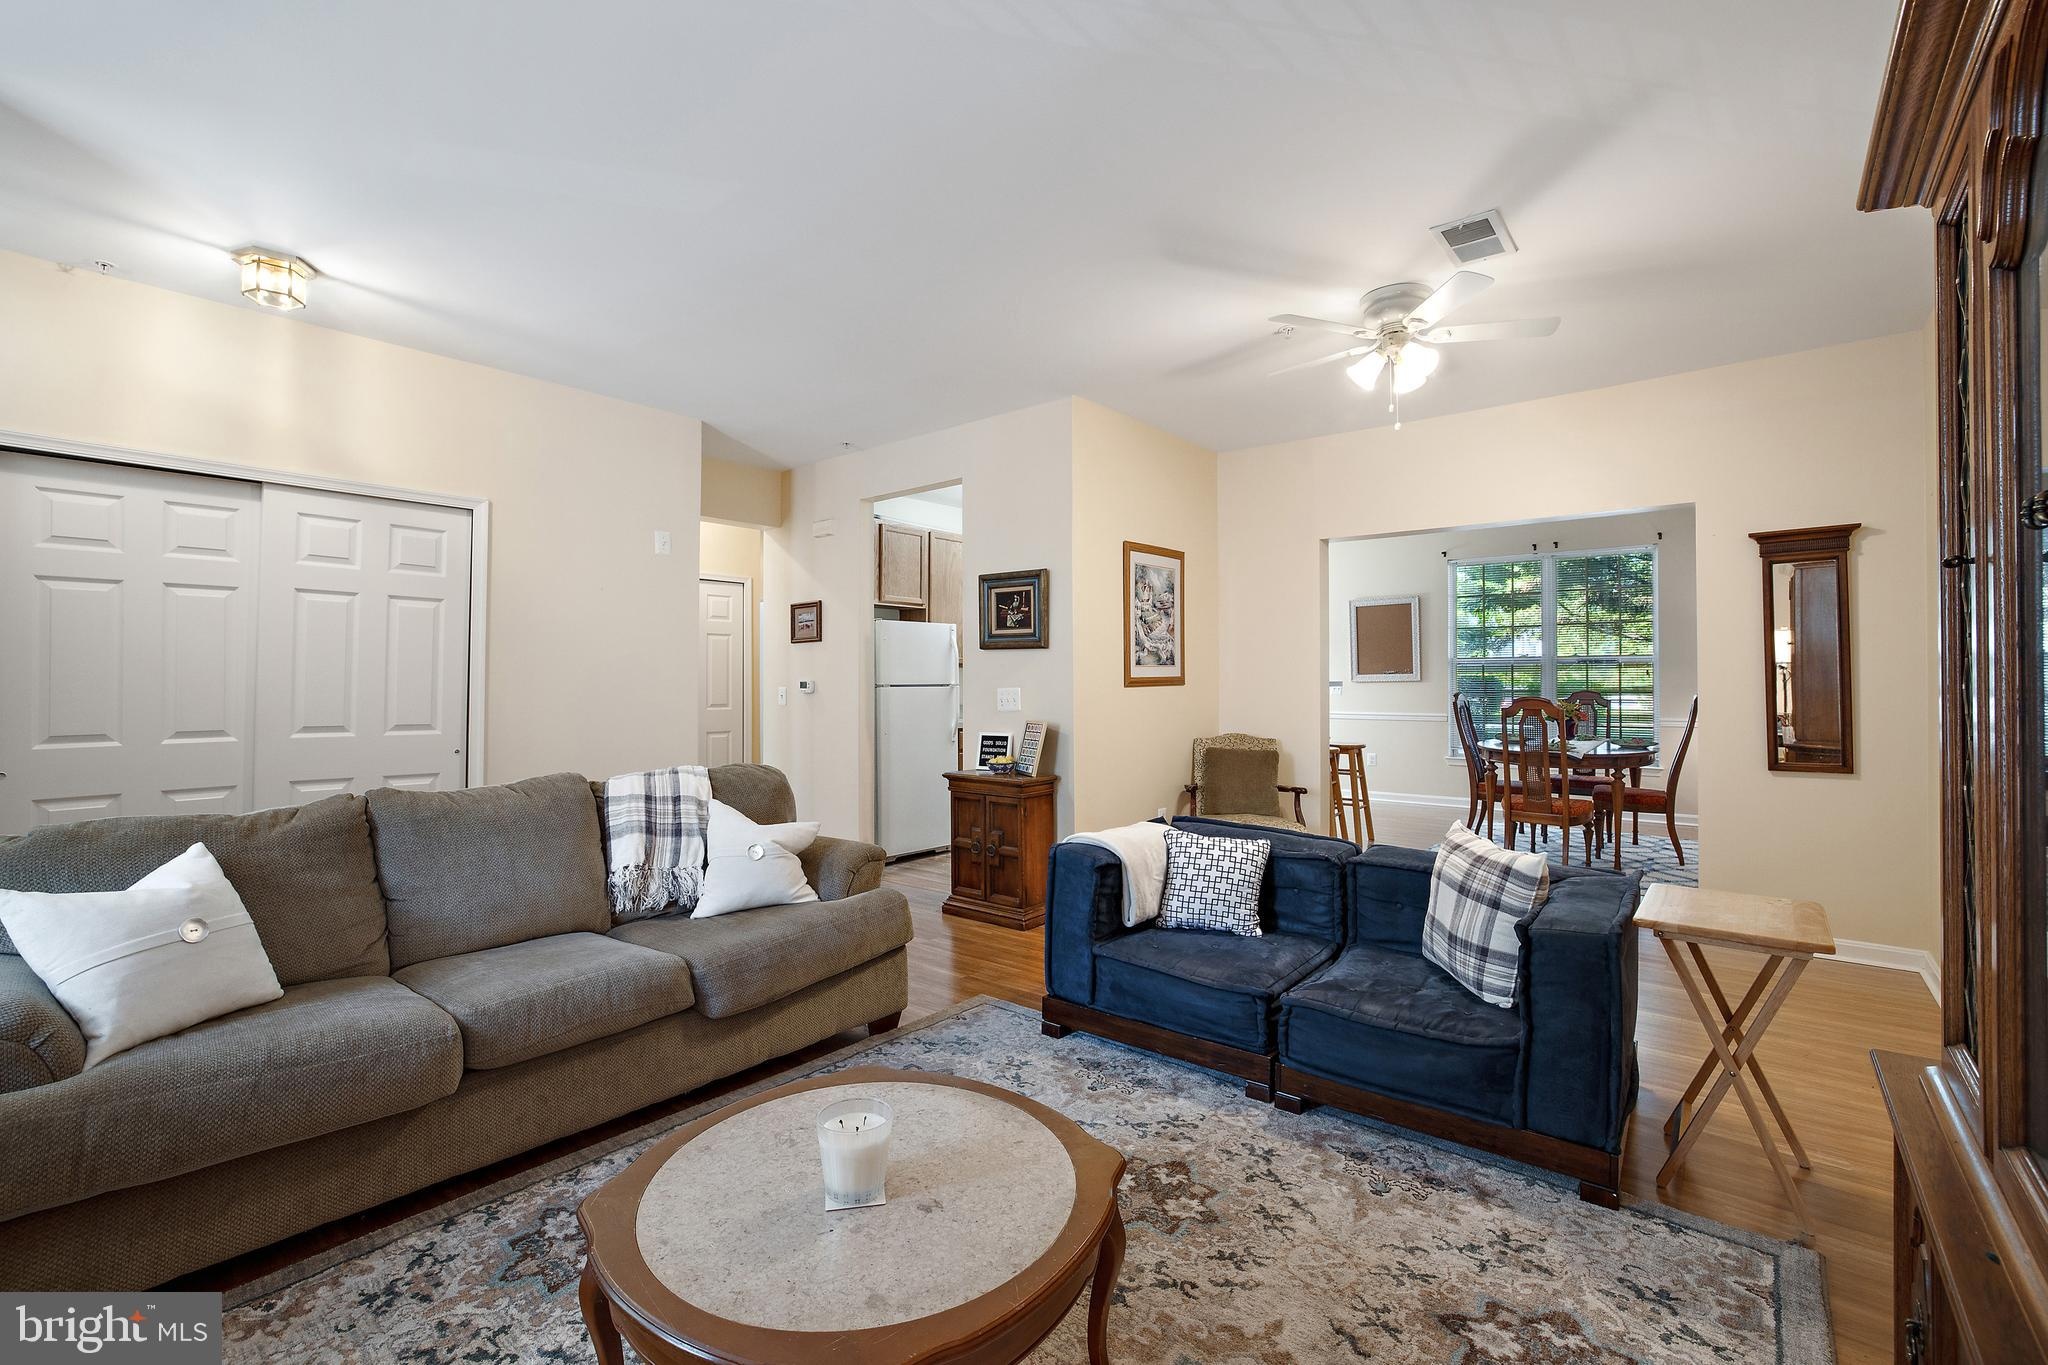 Lovely Three Bedroom Condo Now Available in Annapolis.  Main Level Entrance and One-Level Living! We